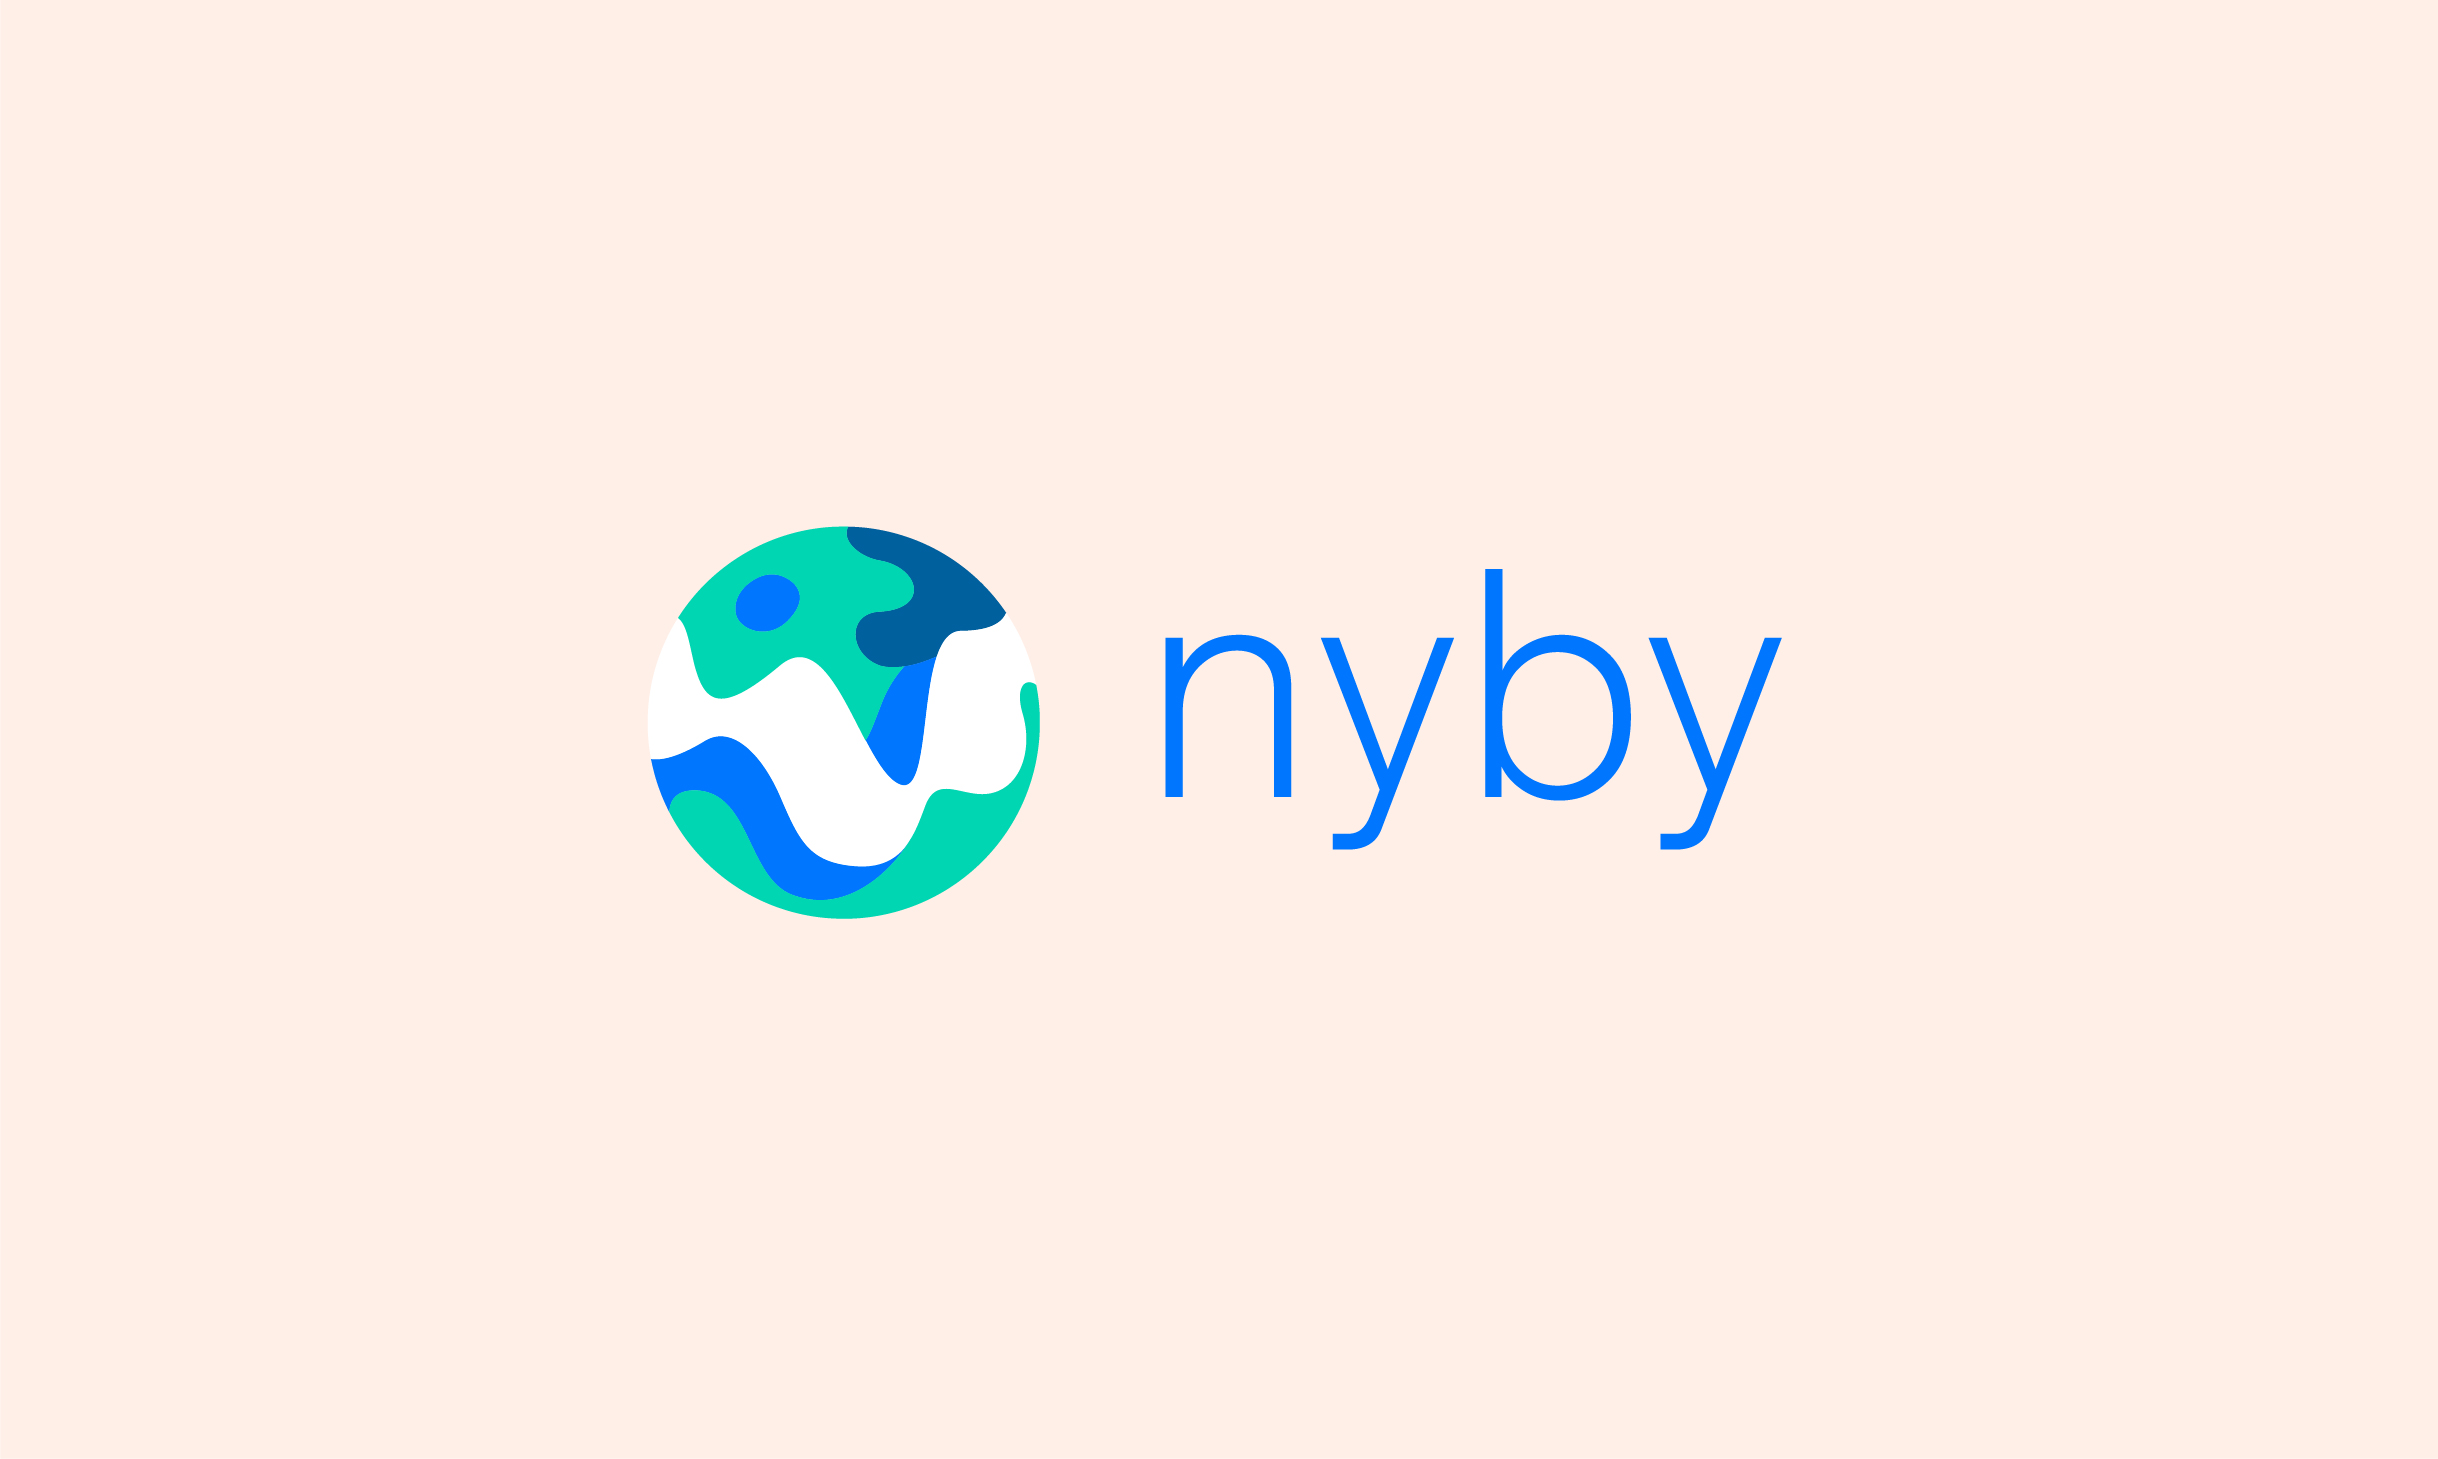 Cover image: Nyby